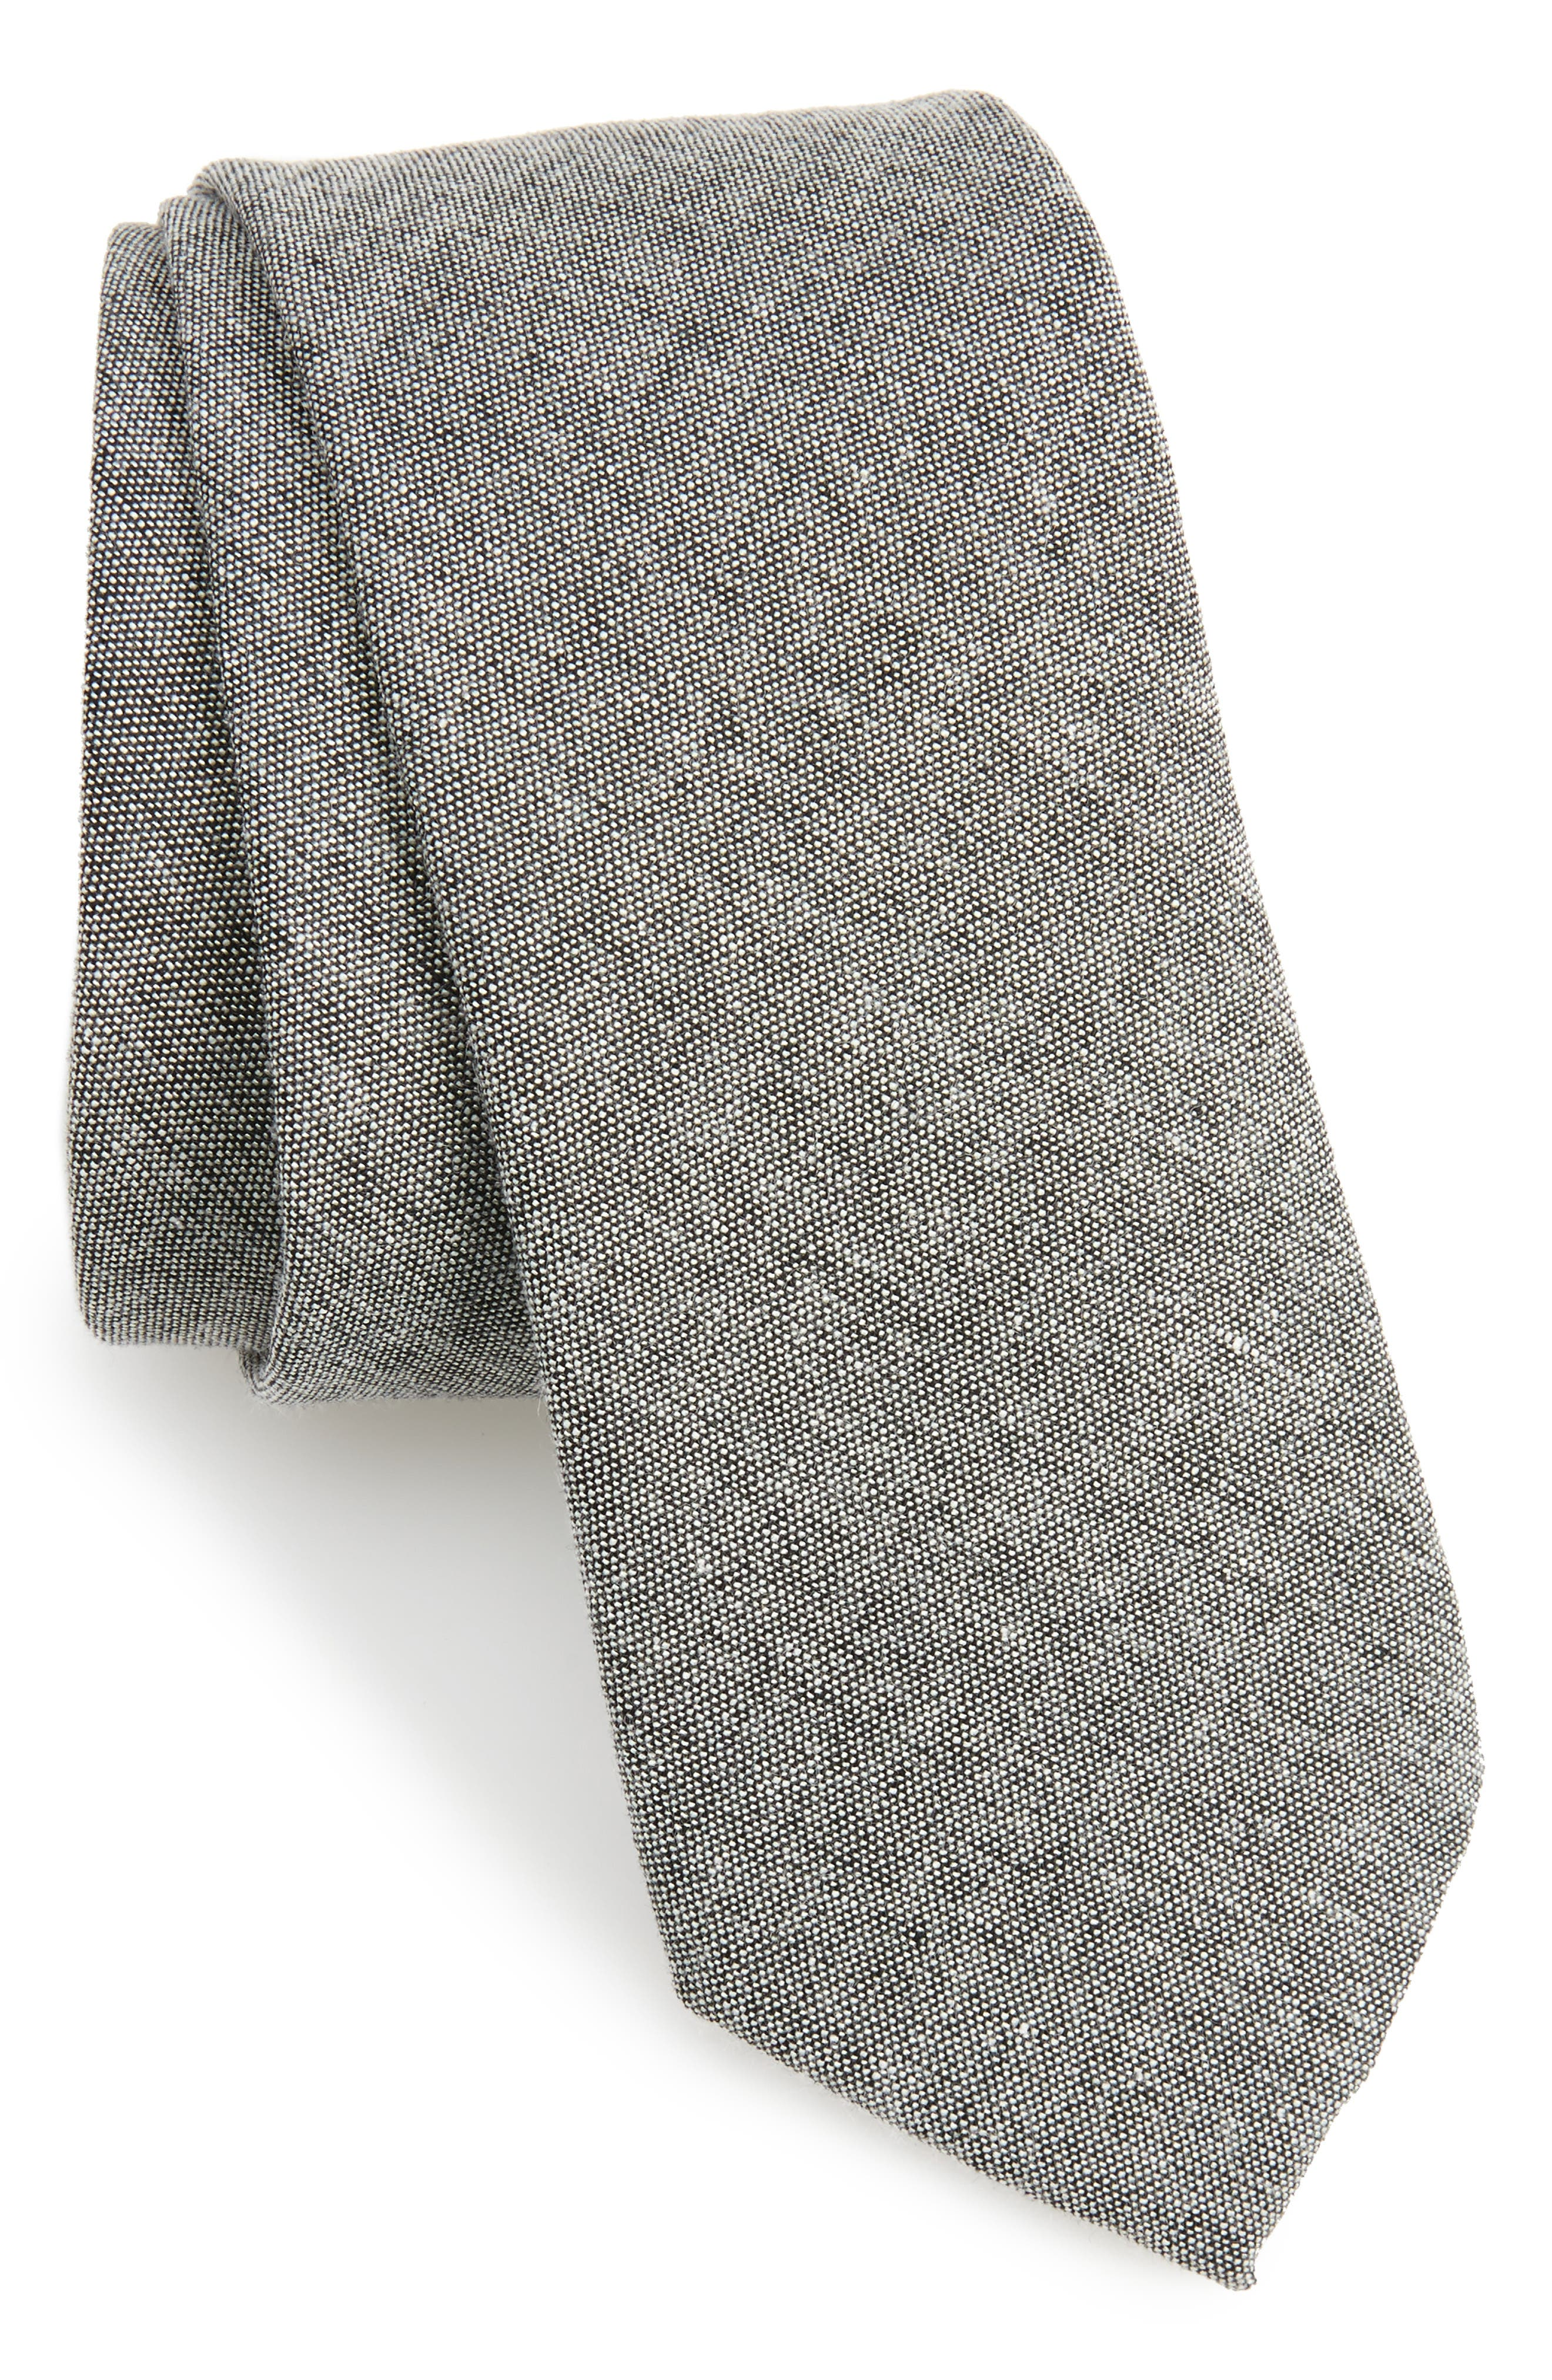 Textured Skinny Tie,                             Main thumbnail 1, color,                             001